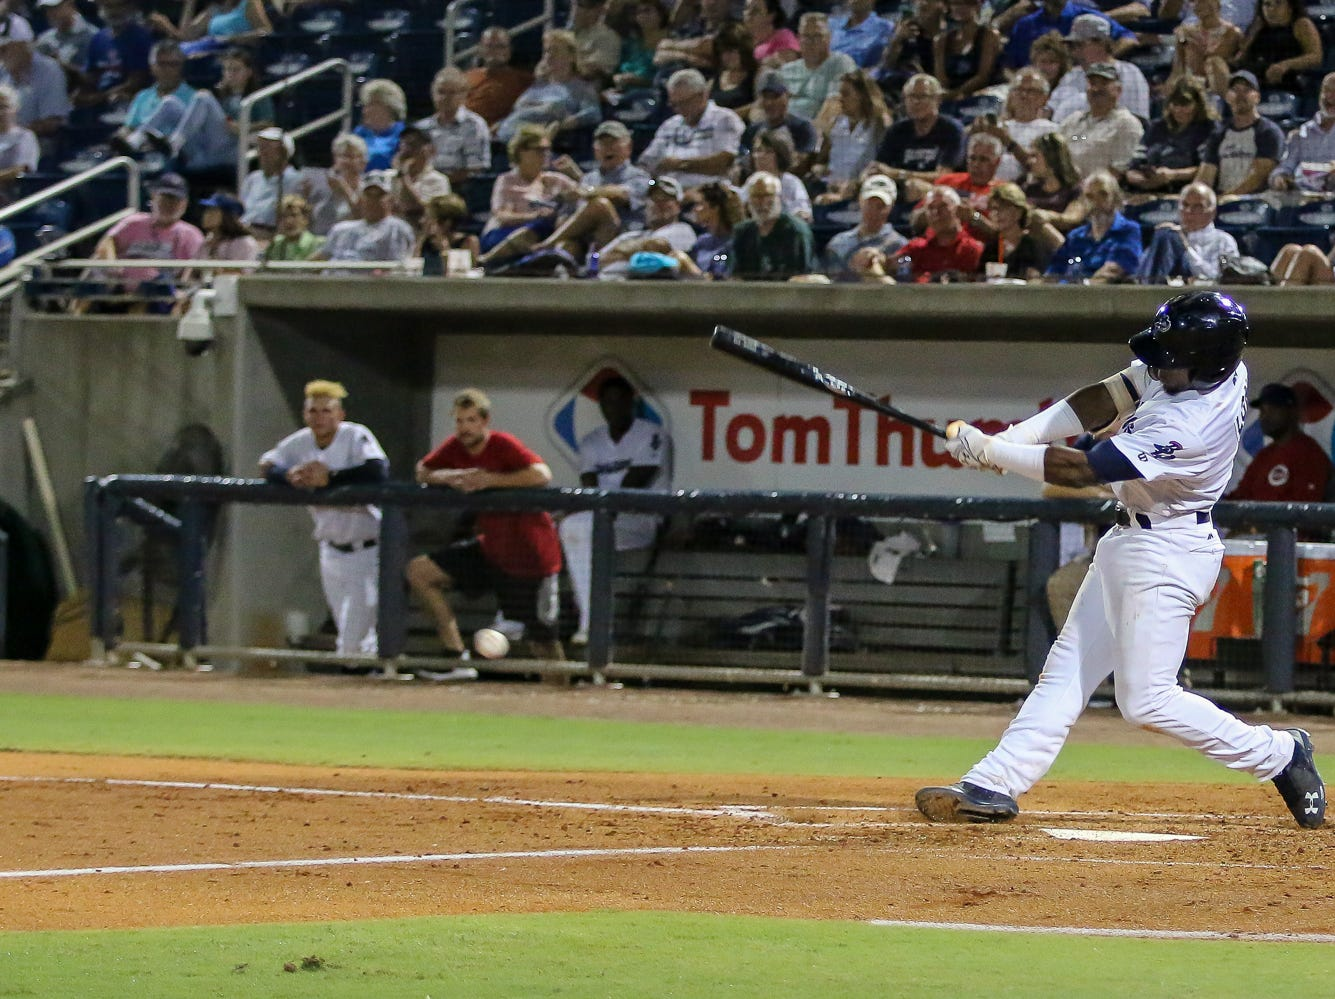 Pensacola's Shed Long (4) hits a pitch thrown by Mobile's Patrick Sandoval during the Blue Wahoos' last home game of the regular season on Tuesday, August 28, 2018.